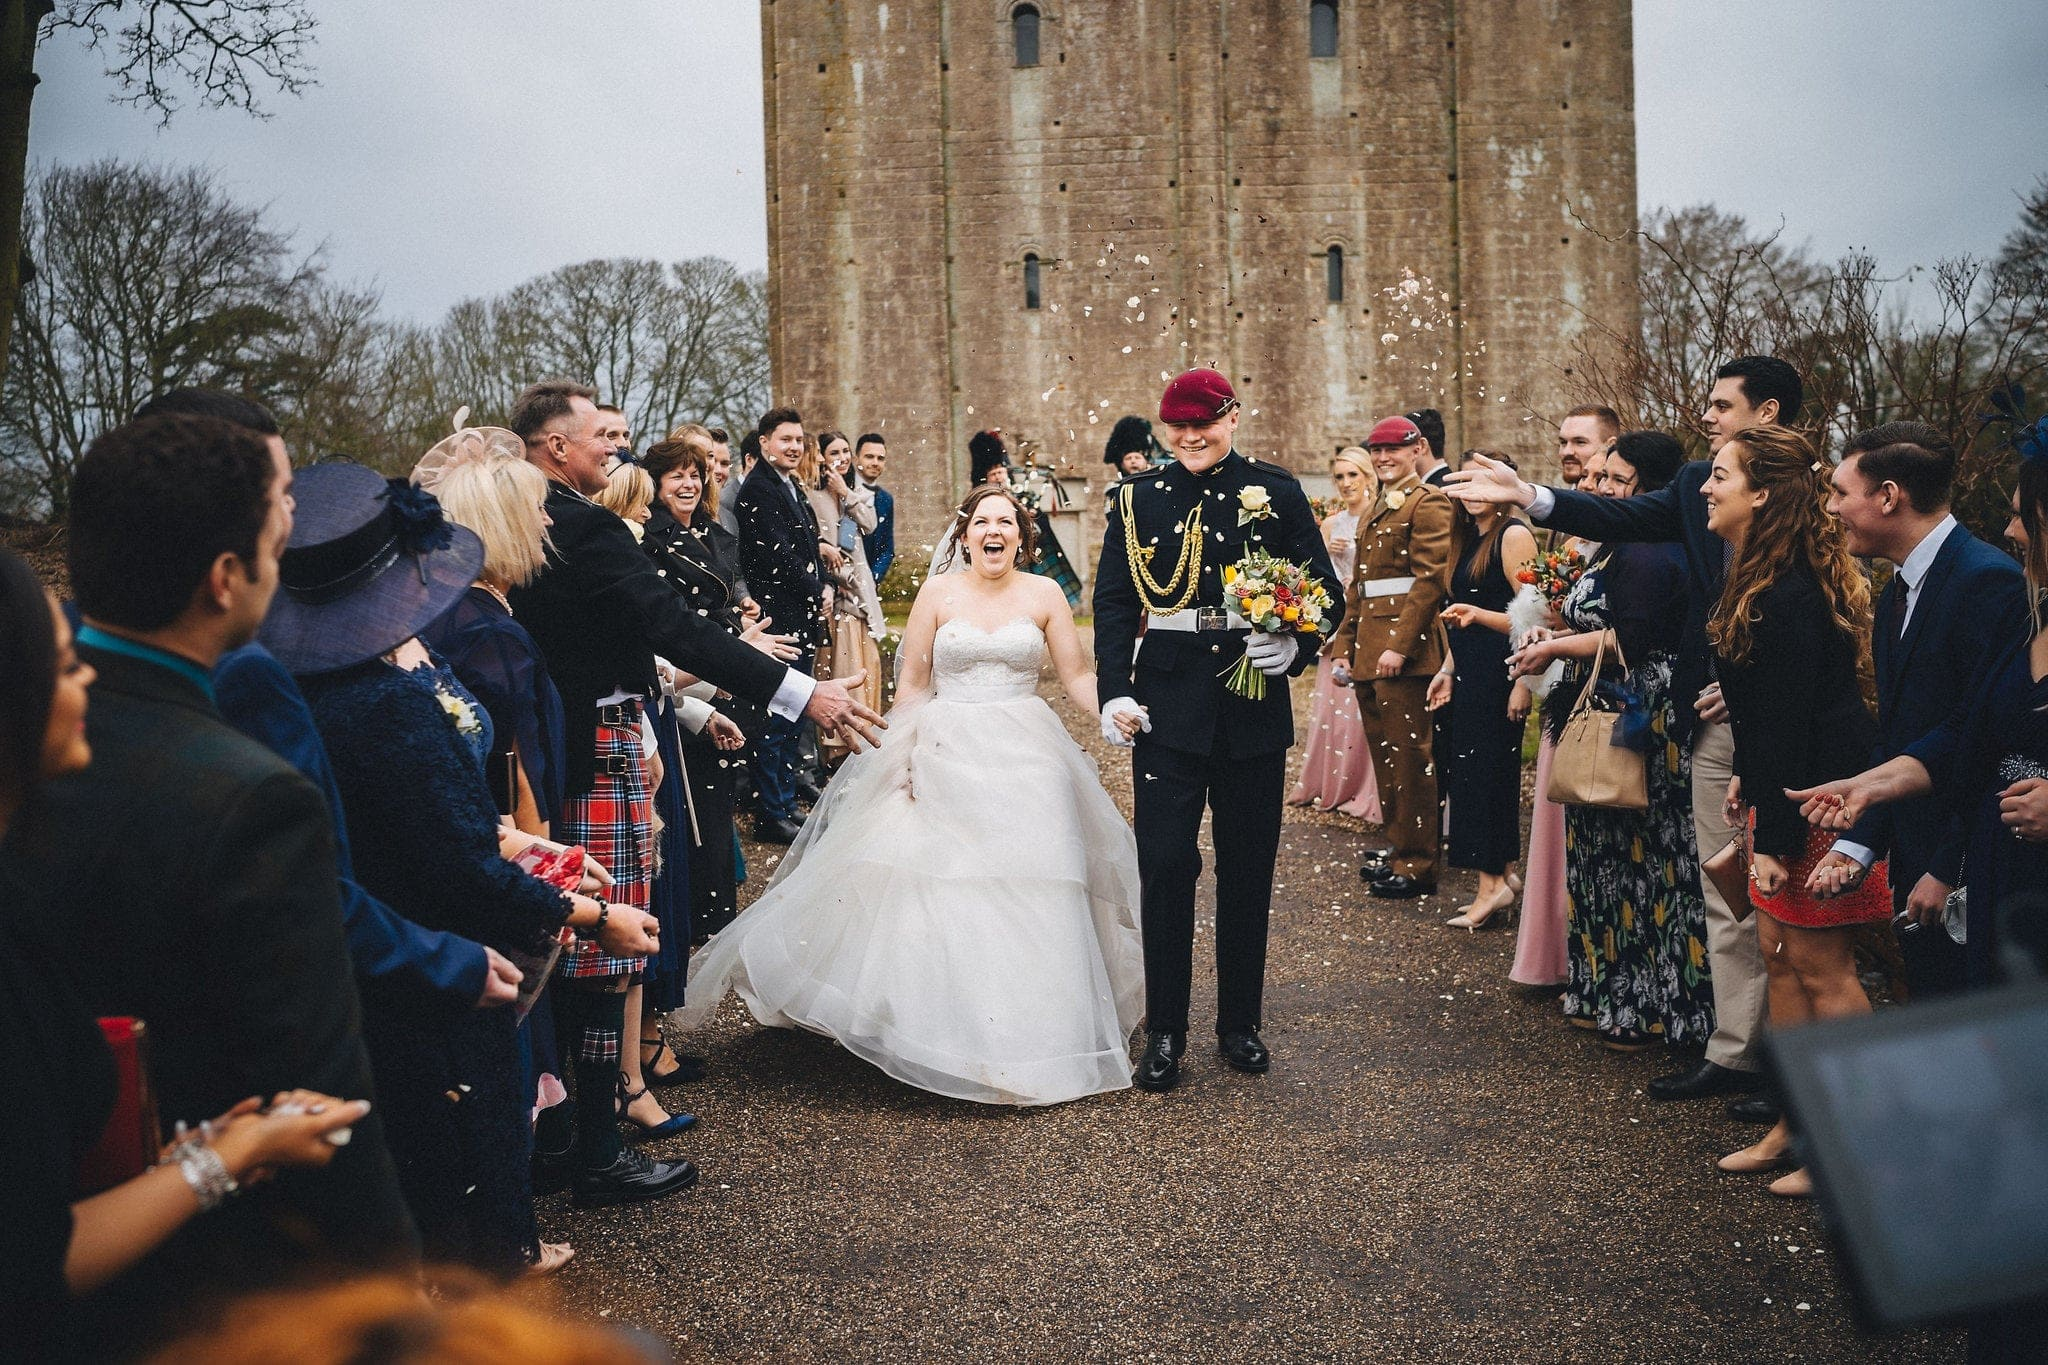 Bride and groom walk through confetti at Hedingham Castle